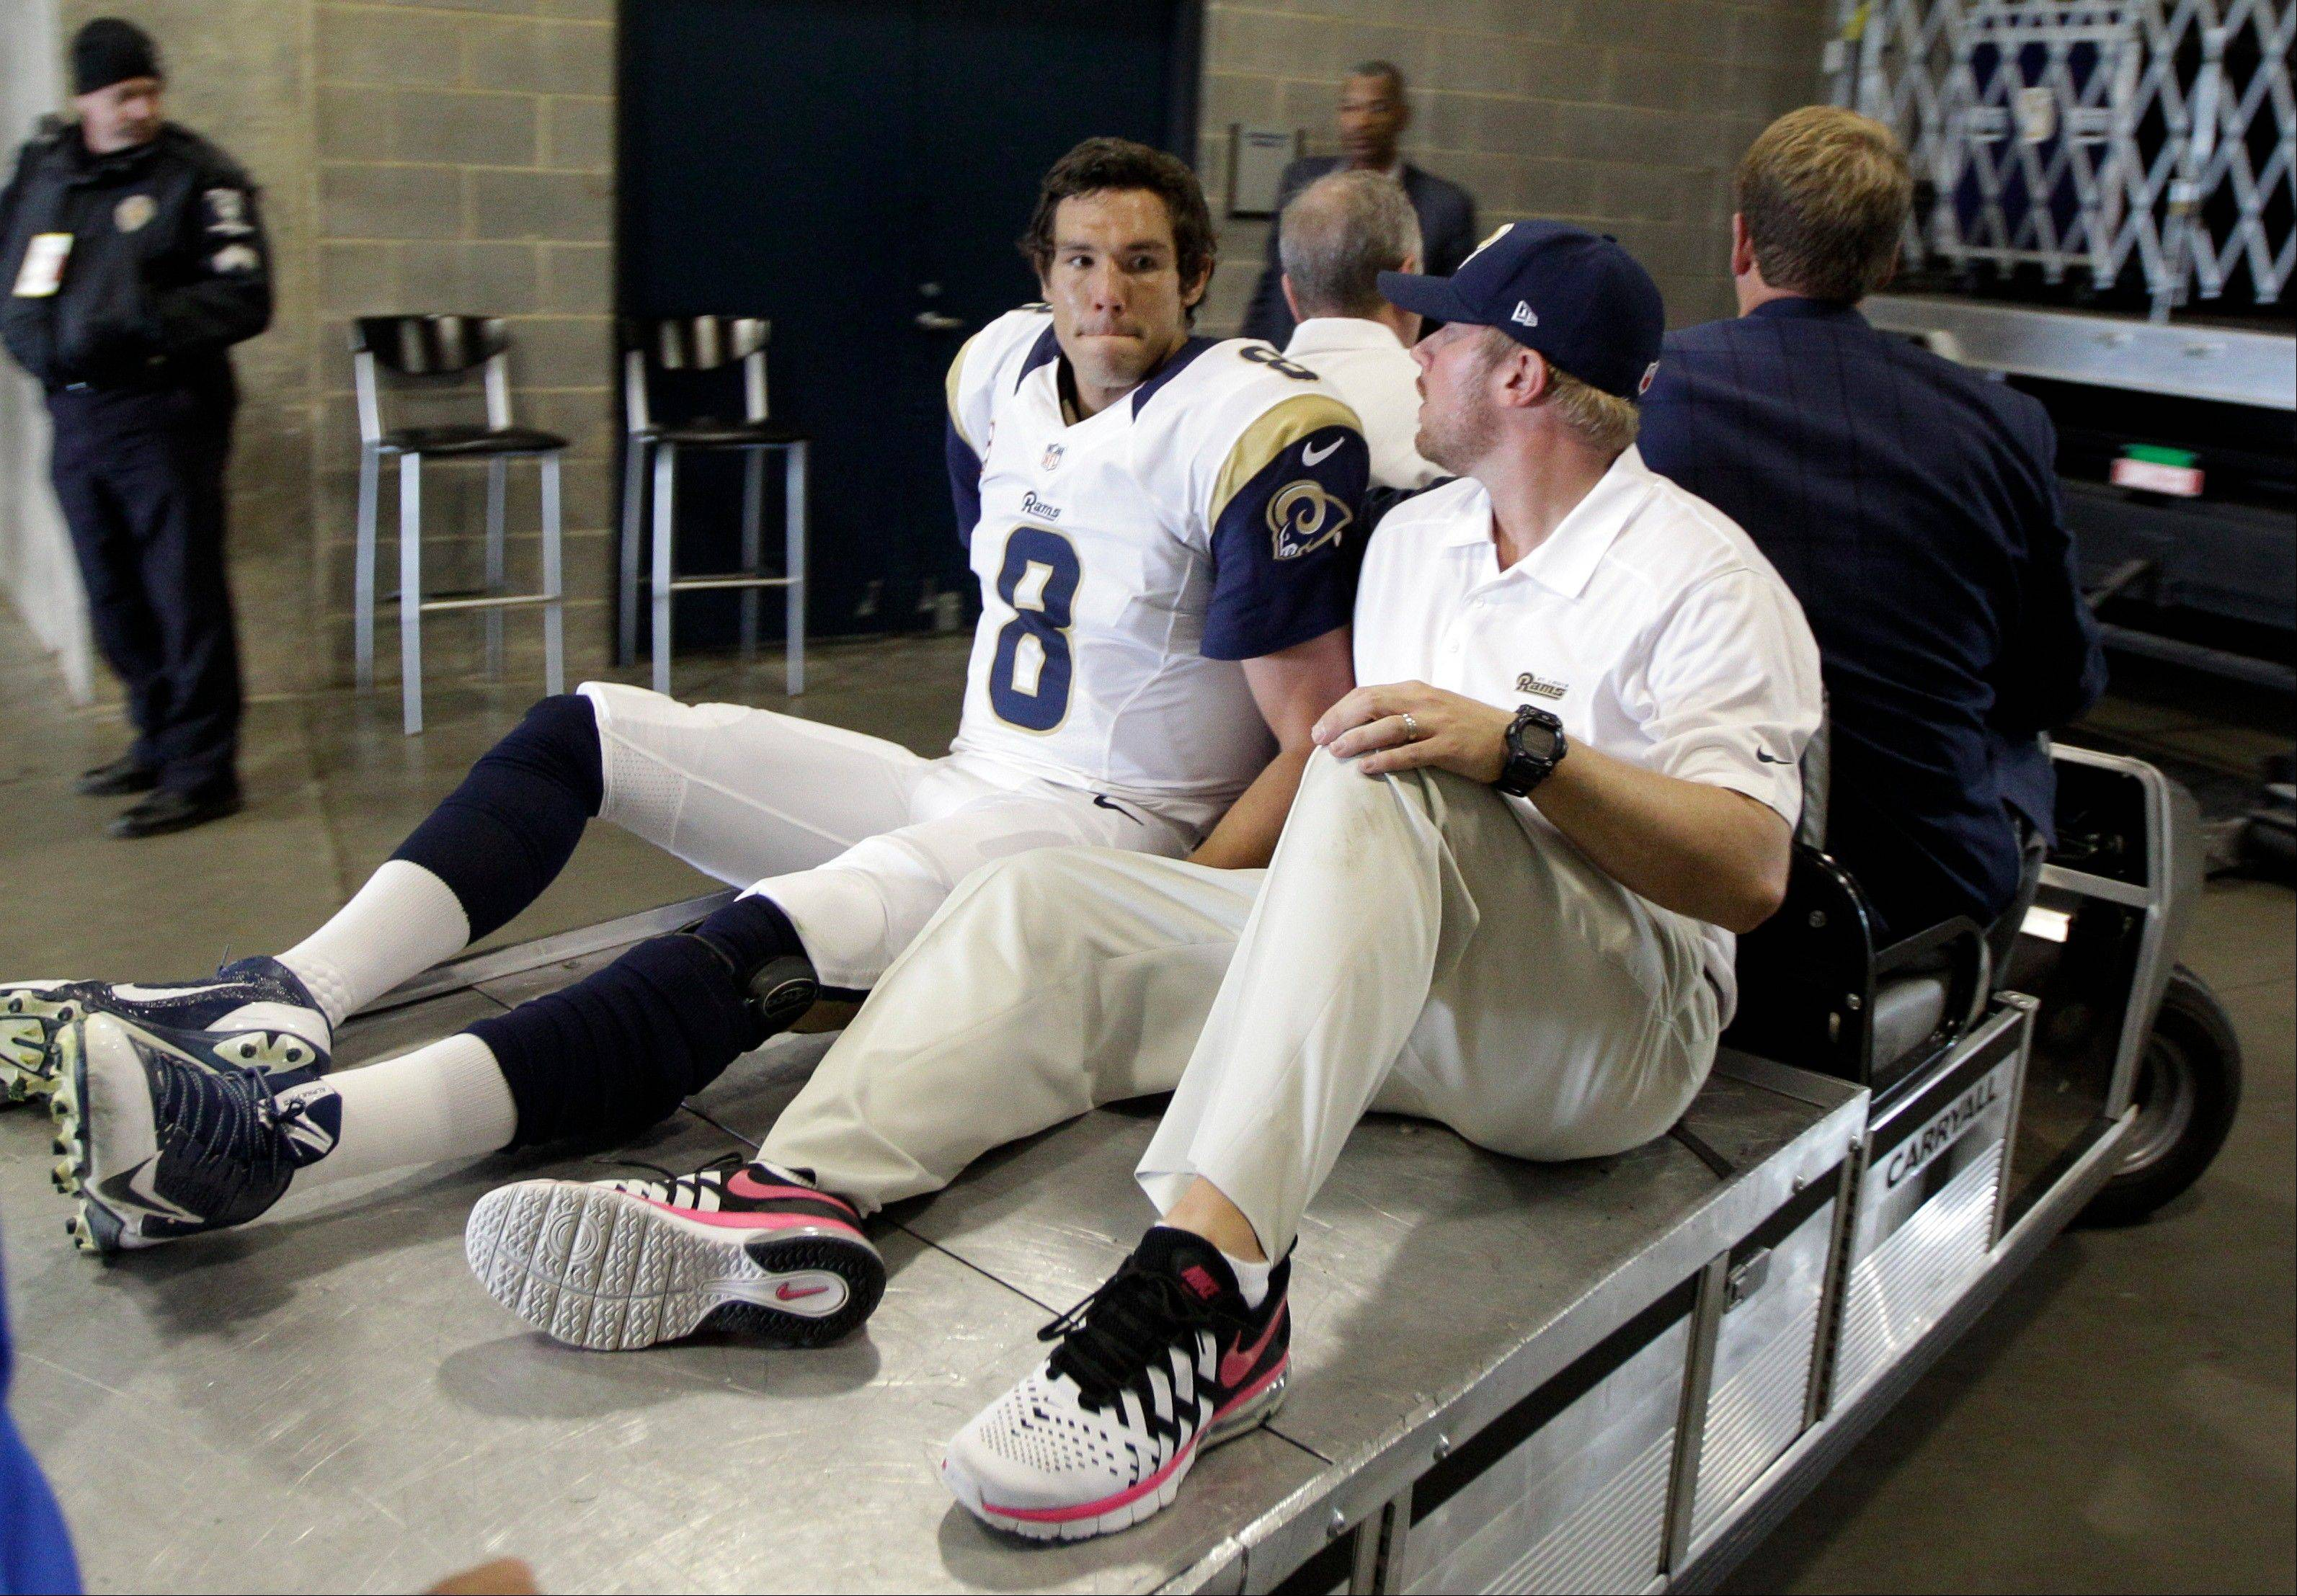 St. Louis quarterback Sam Bradford will miss the rest of the season because of a torn knee ligament suffered in Sunday�s road game against the Carolina Panthers.